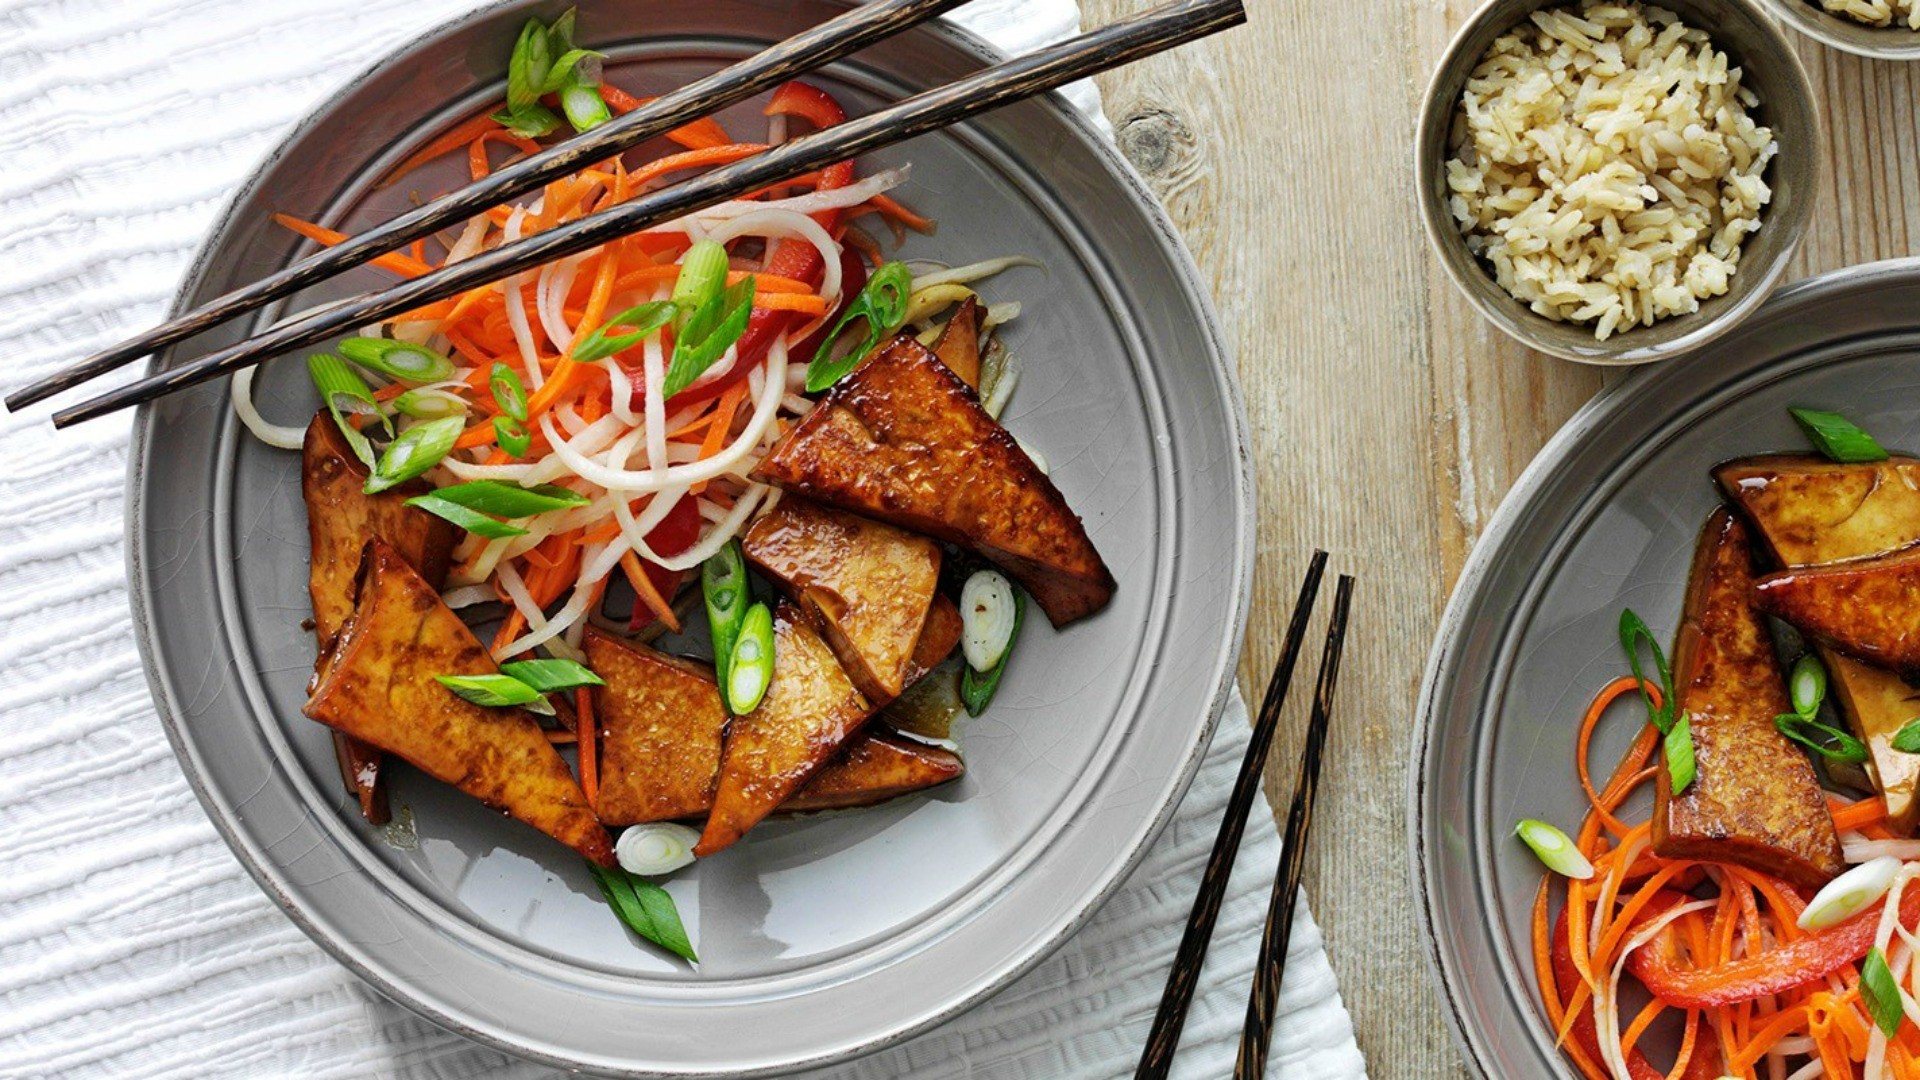 The sweetness of the tofu works perfectly with the crunchy freshness of the vegetables